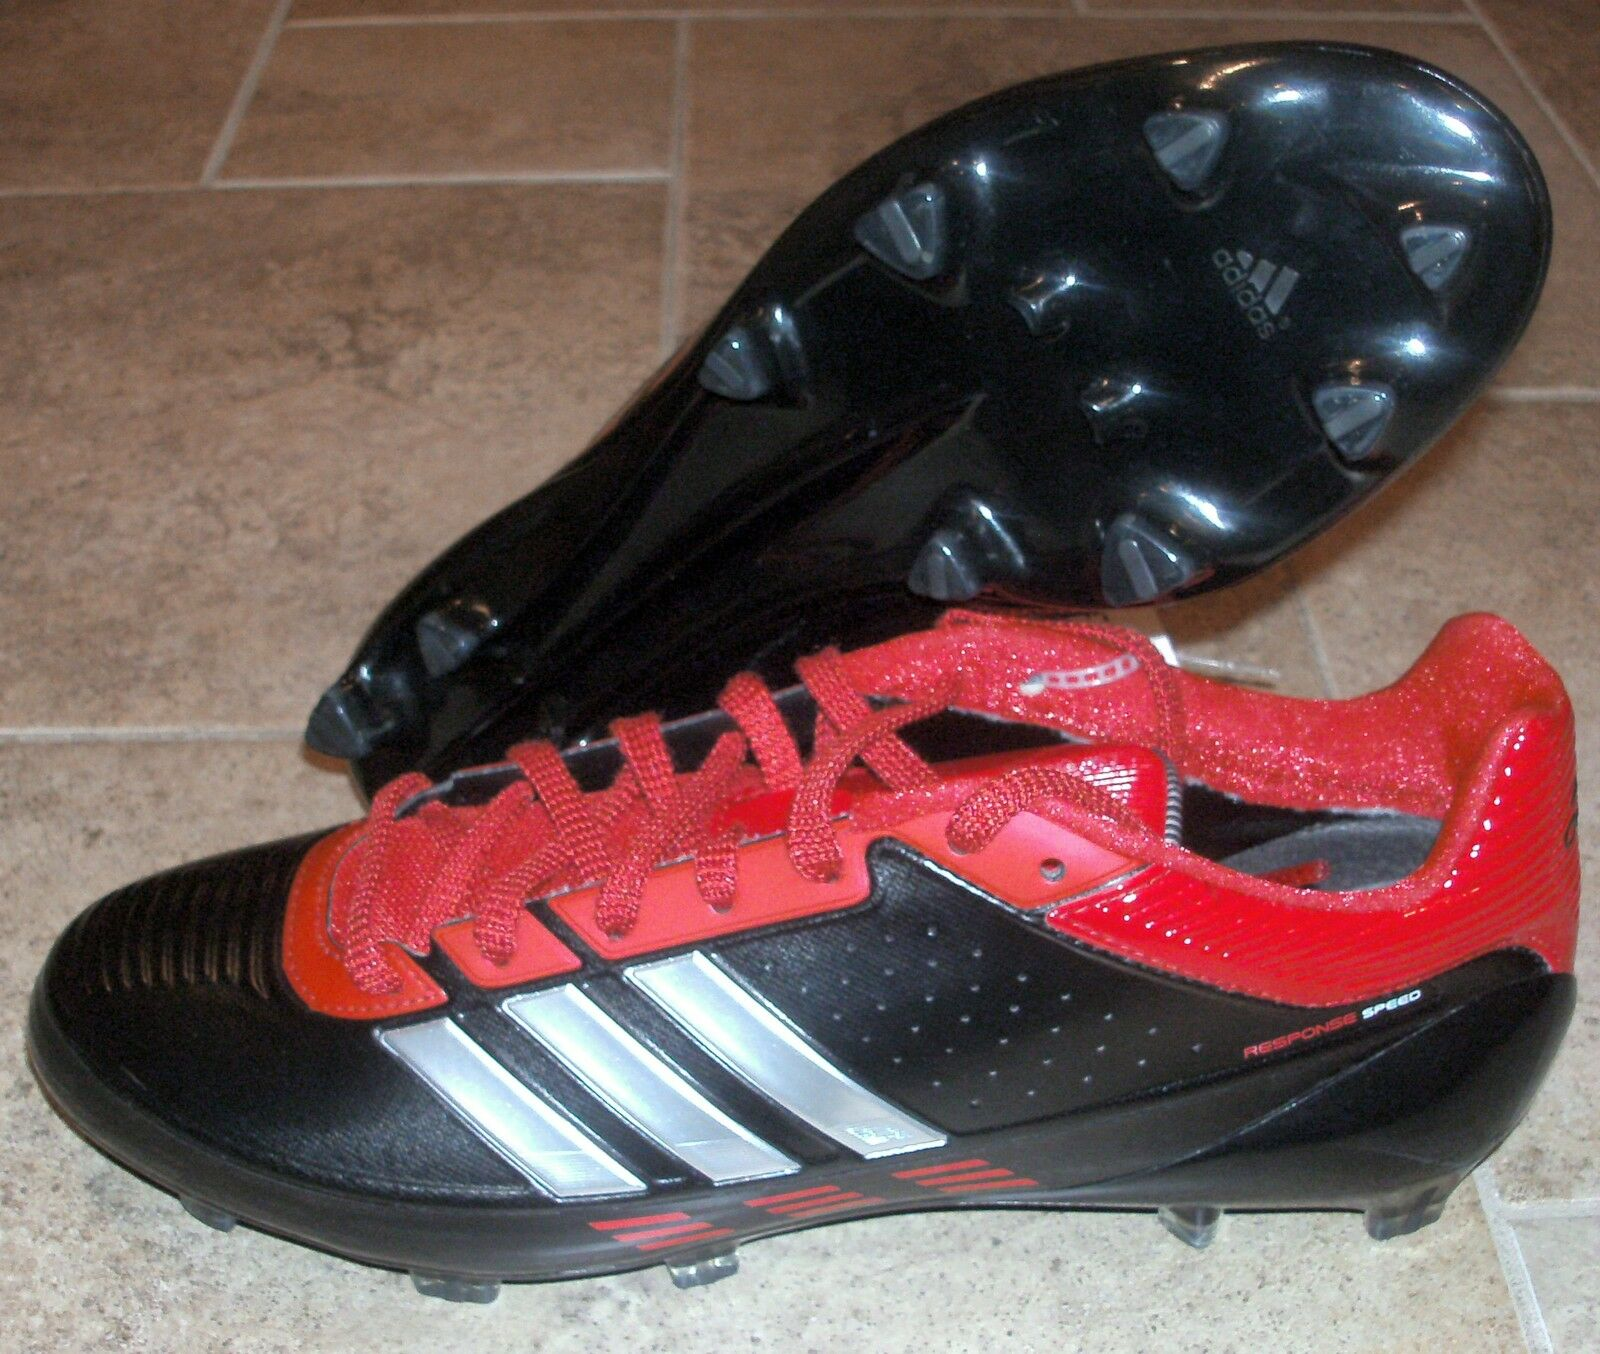 NEW ADIDAS RESPONSE SPEED Football Cleats Mens 9 Price reduction Seasonal clearance sale